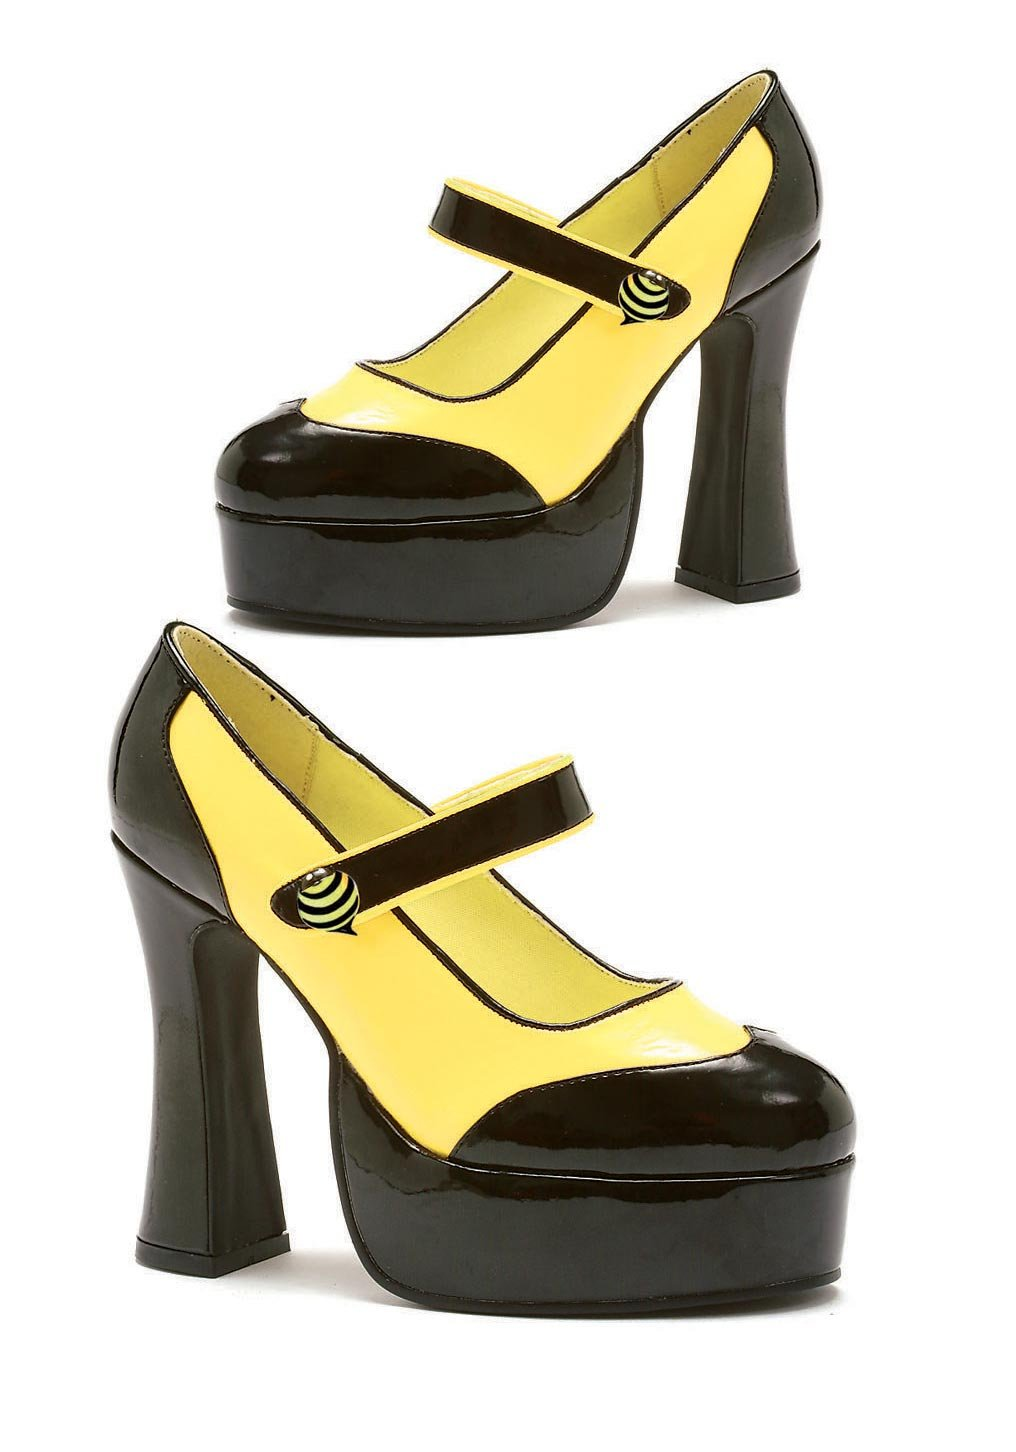 Bumble Costume Shoes - Size 9